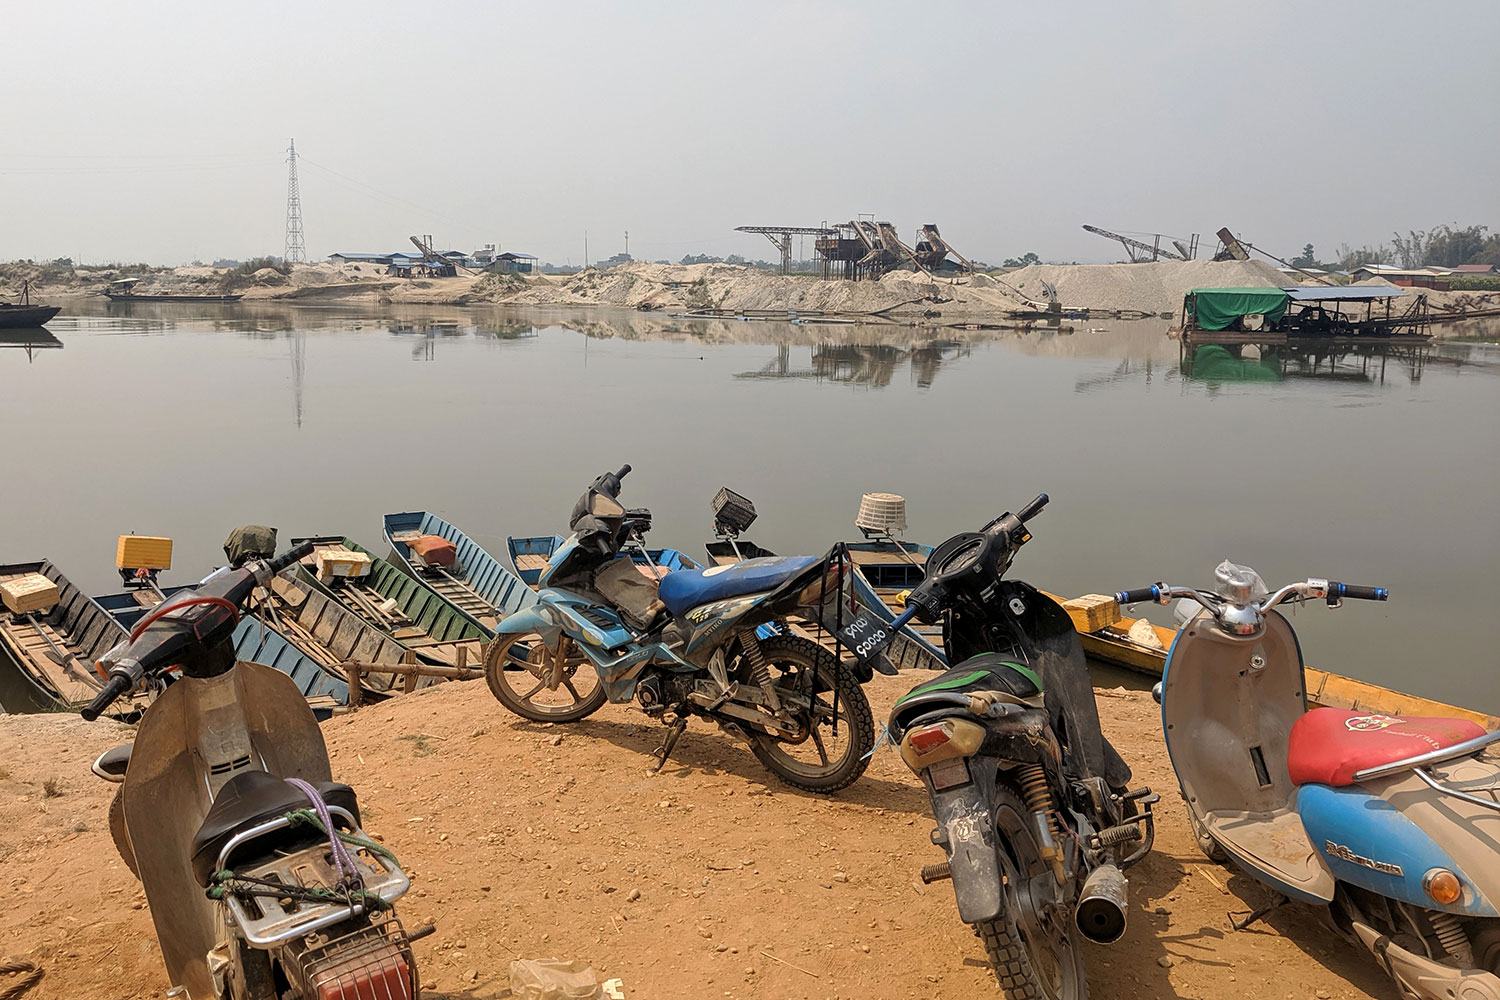 The photo shows an areae looking across a body of water with a number of motorbikes parked in the foreground.